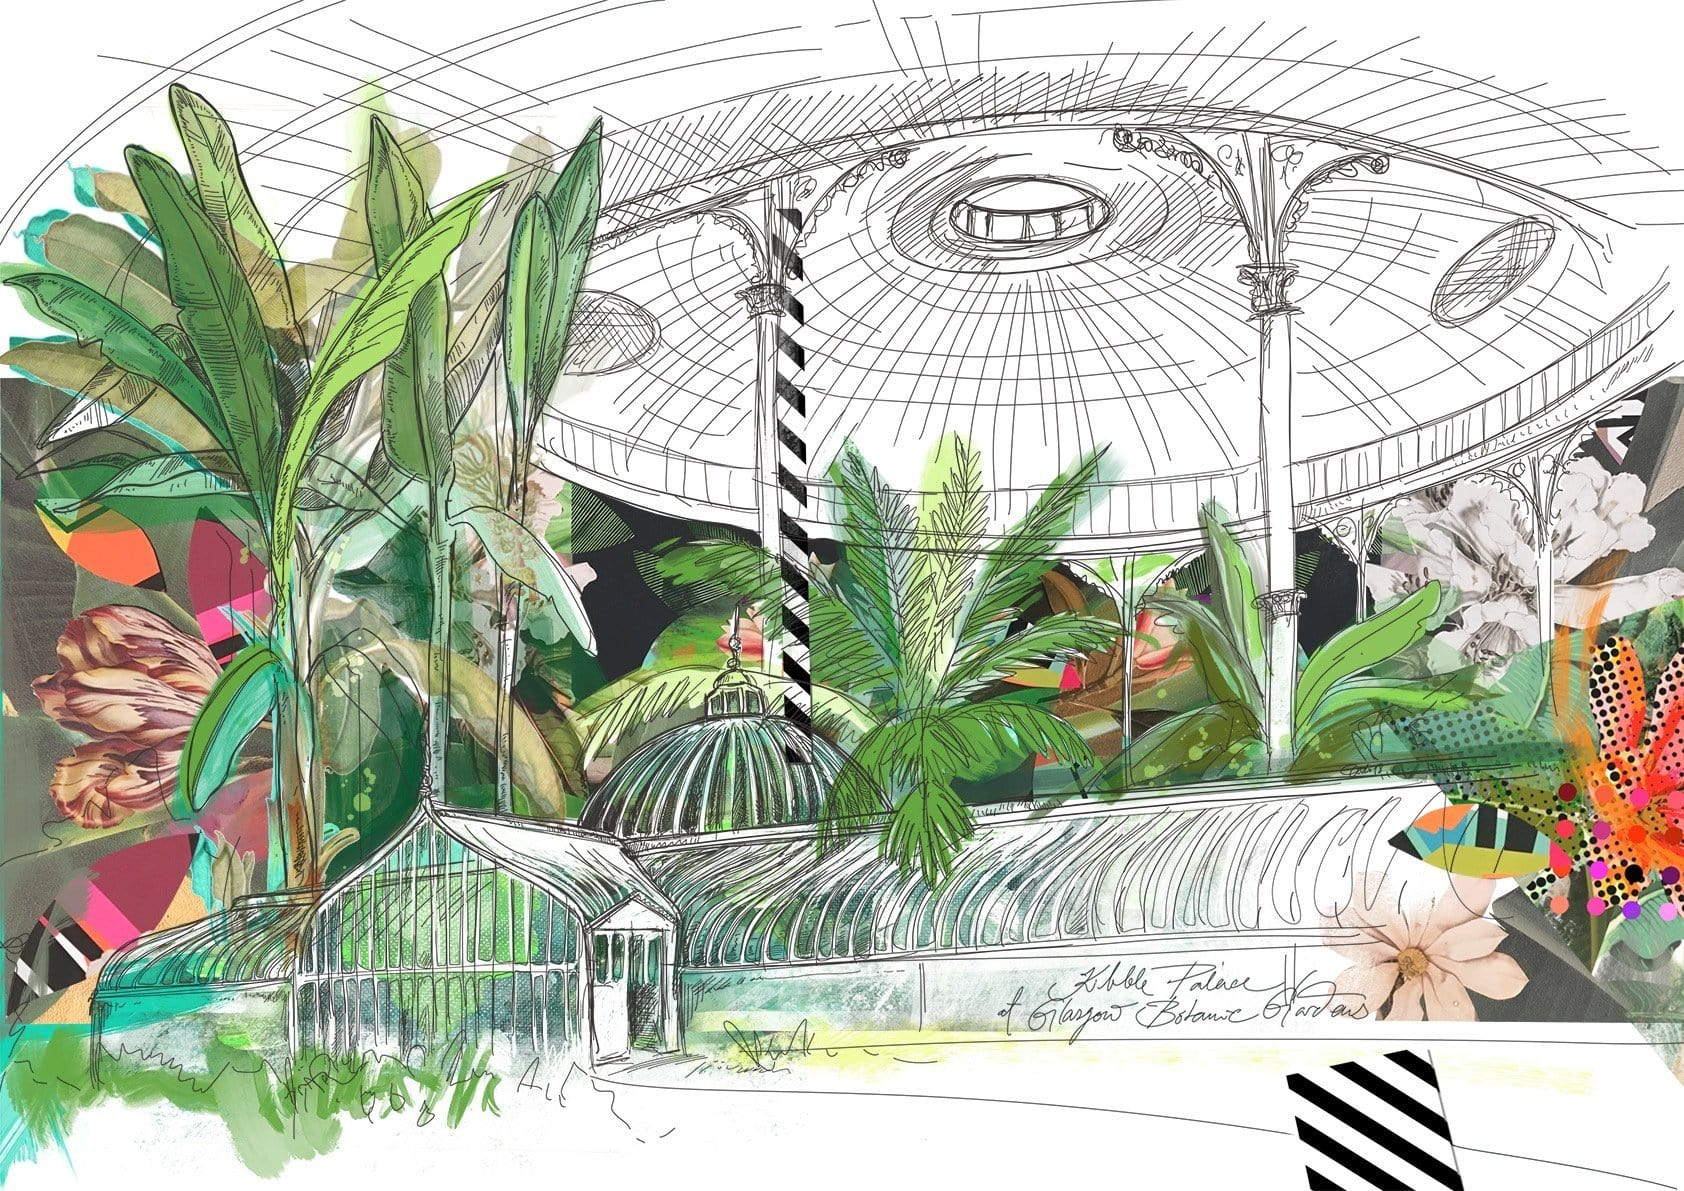 Kibble Palace of Glasgow Botanic Gardens Matte Art Print